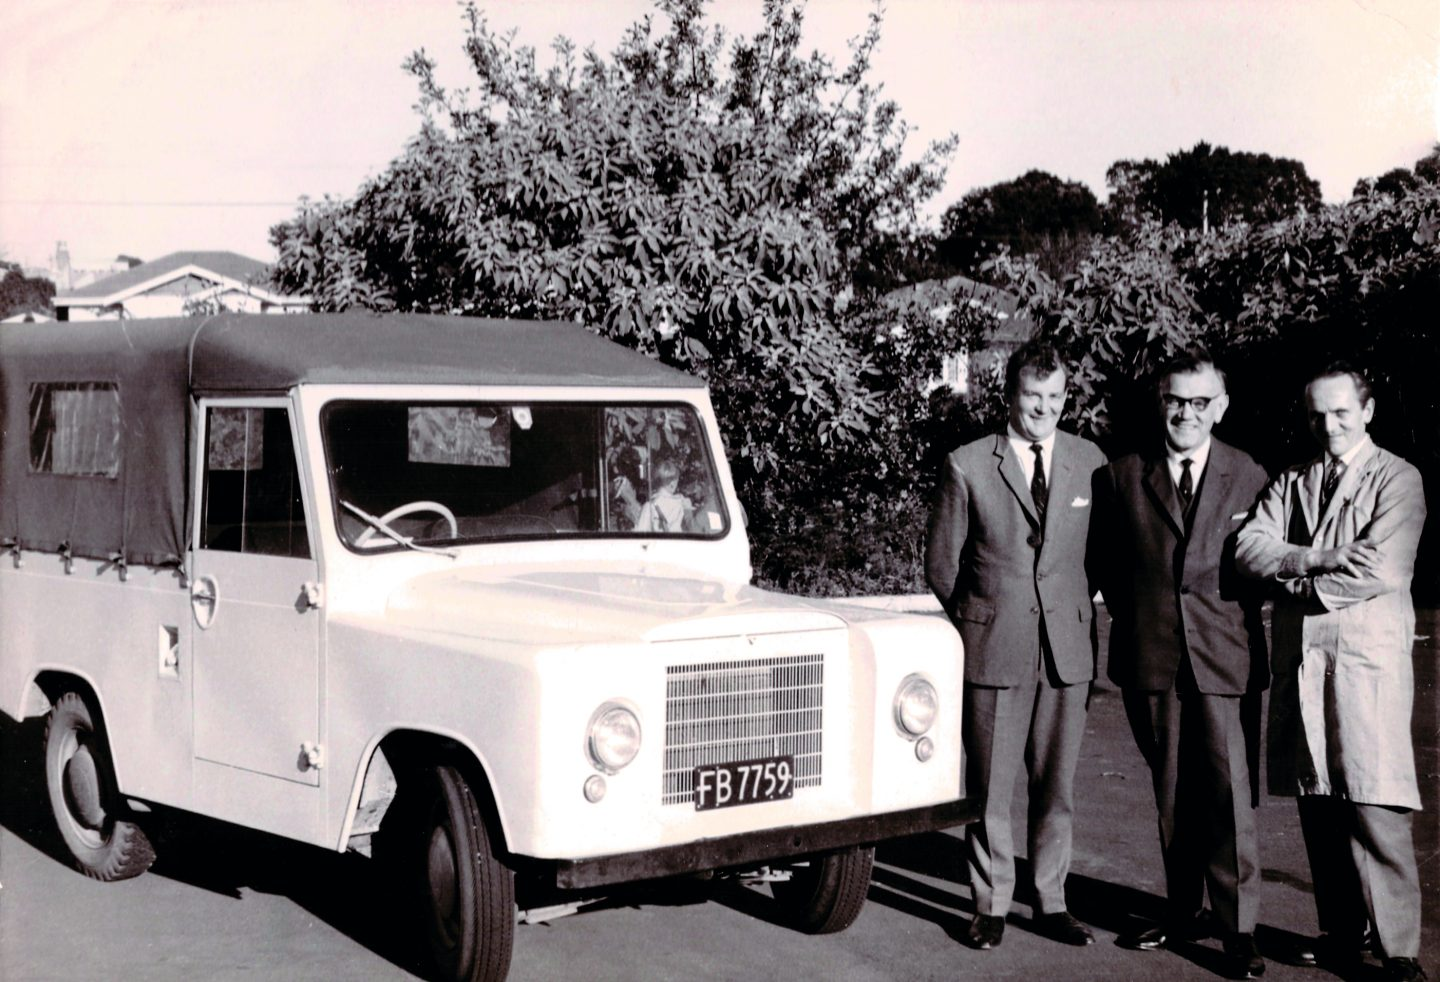 The predecessor of the Škoda SUV Models was launched 50 years ago